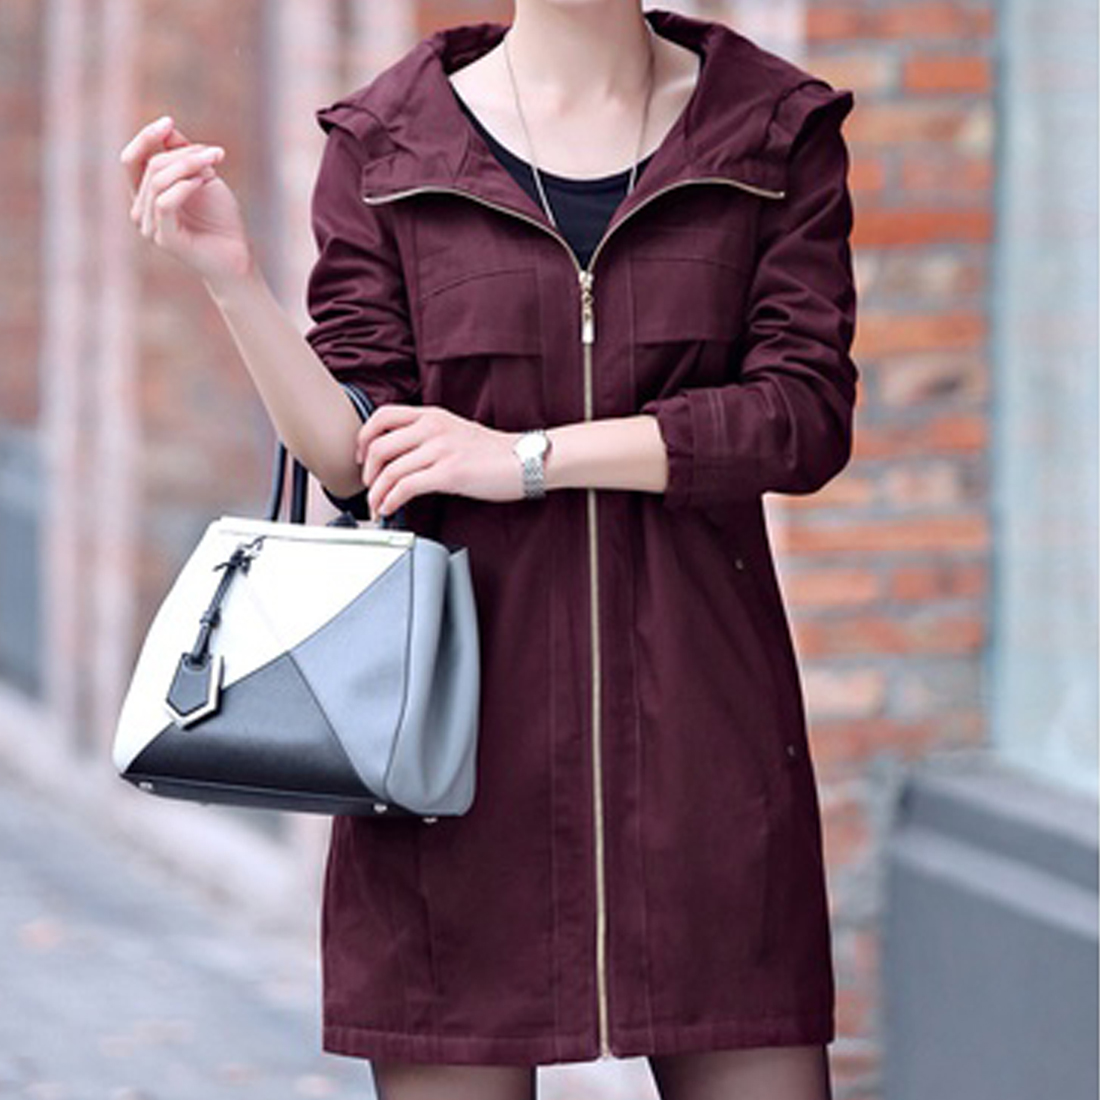 Top Sell Fashion Winter Women's   Trench   Coat With A Hood Warm Cotton Spliced Big Size Windbreaker Female Outerwear